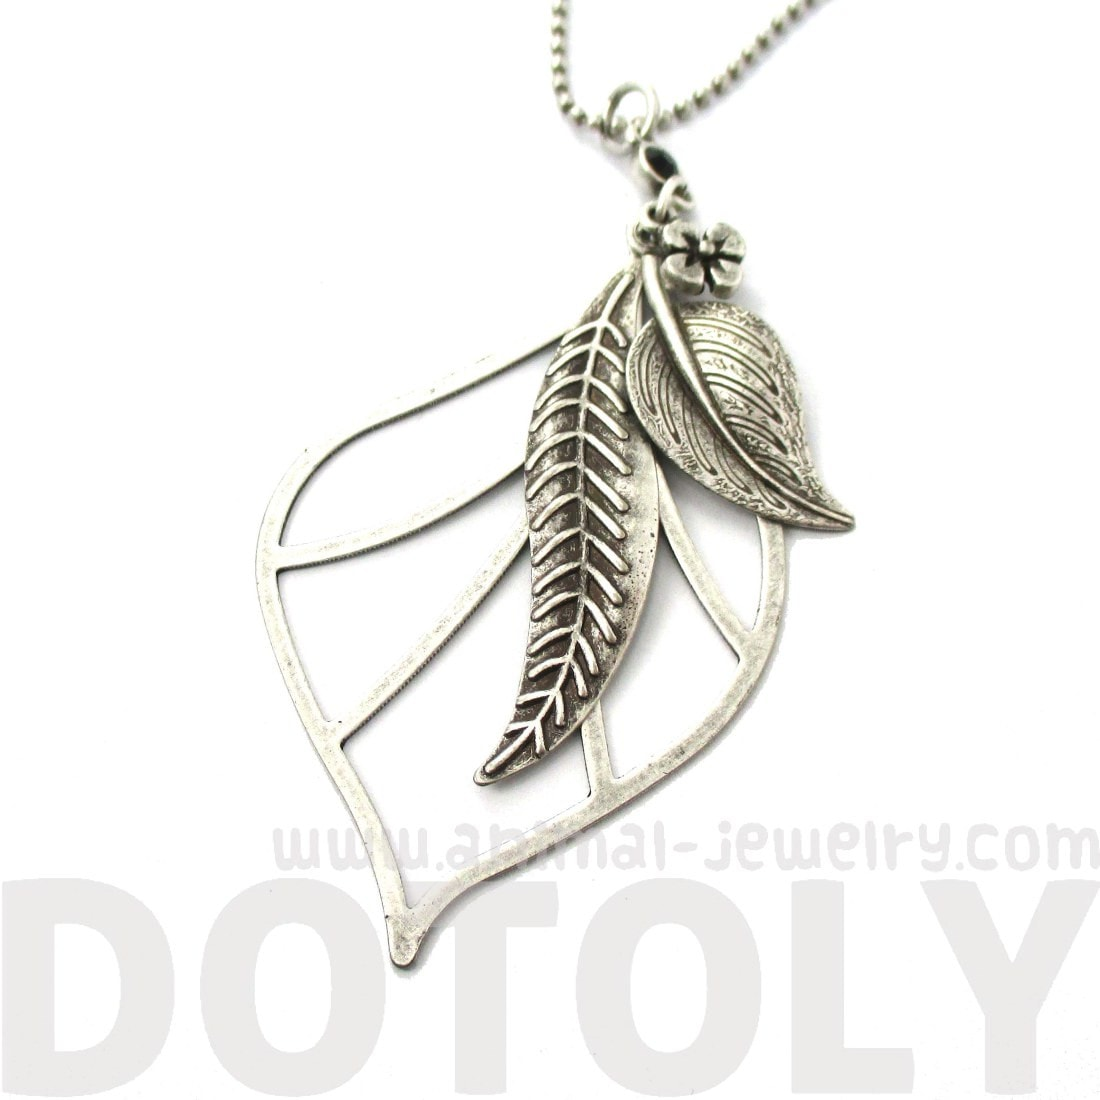 Mixed Floral Leaf Cut Out Shaped Pendant Necklace in Silver